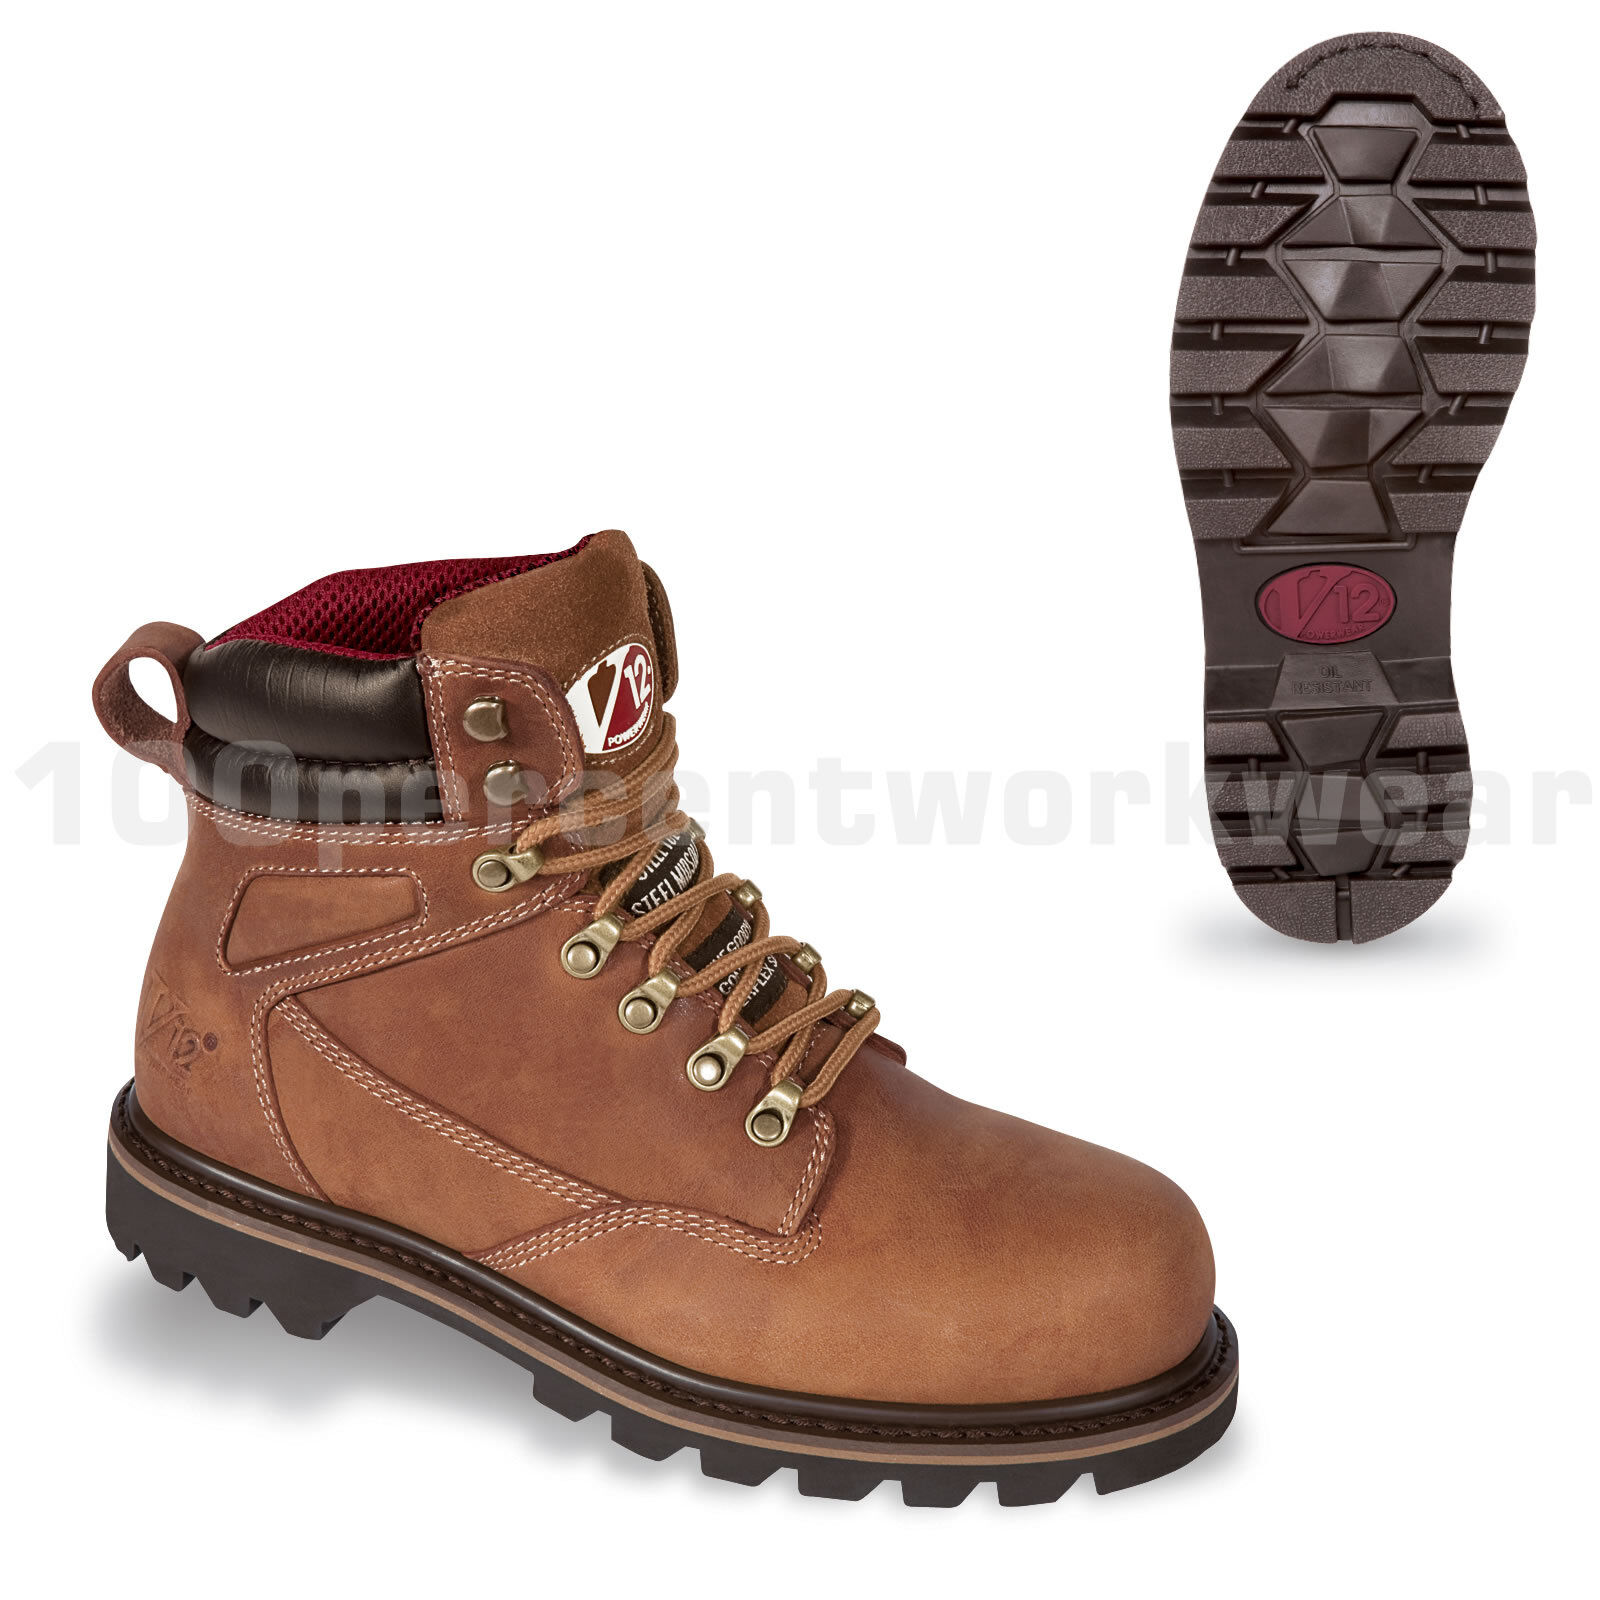 V12 Safety Footwear V1244 MOHAWK Mens Work Boots Brown Leather Steel Toe Cap UK